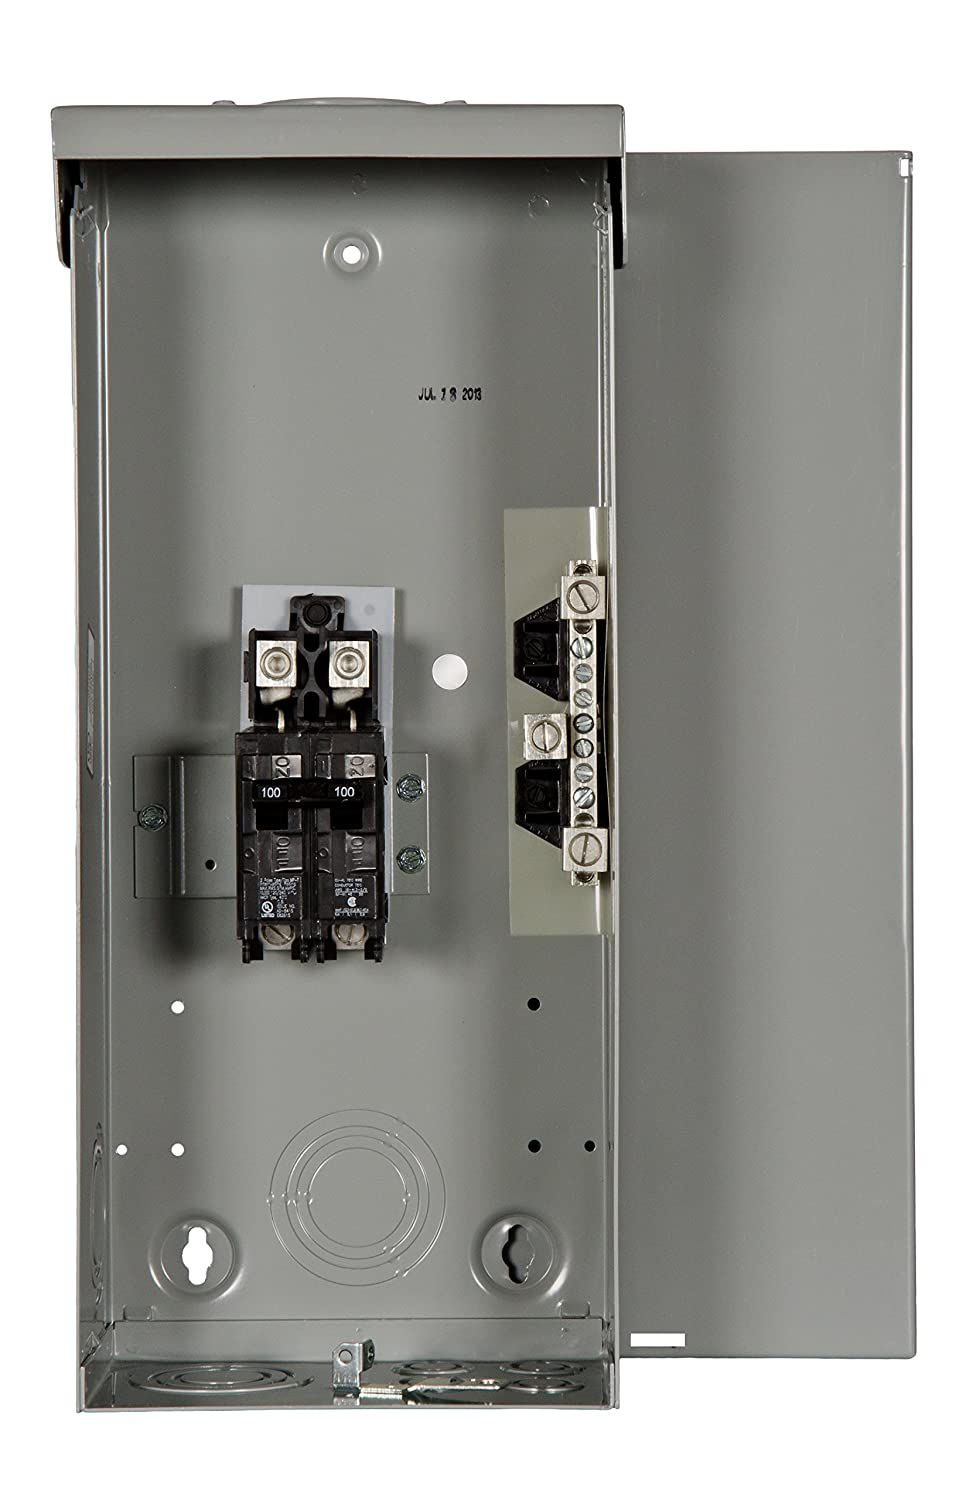 Murray Lw100cru 100a Circuit Breaker Enclosure Included Installation With A Pb30 Inlet On Cutler Hammer Main